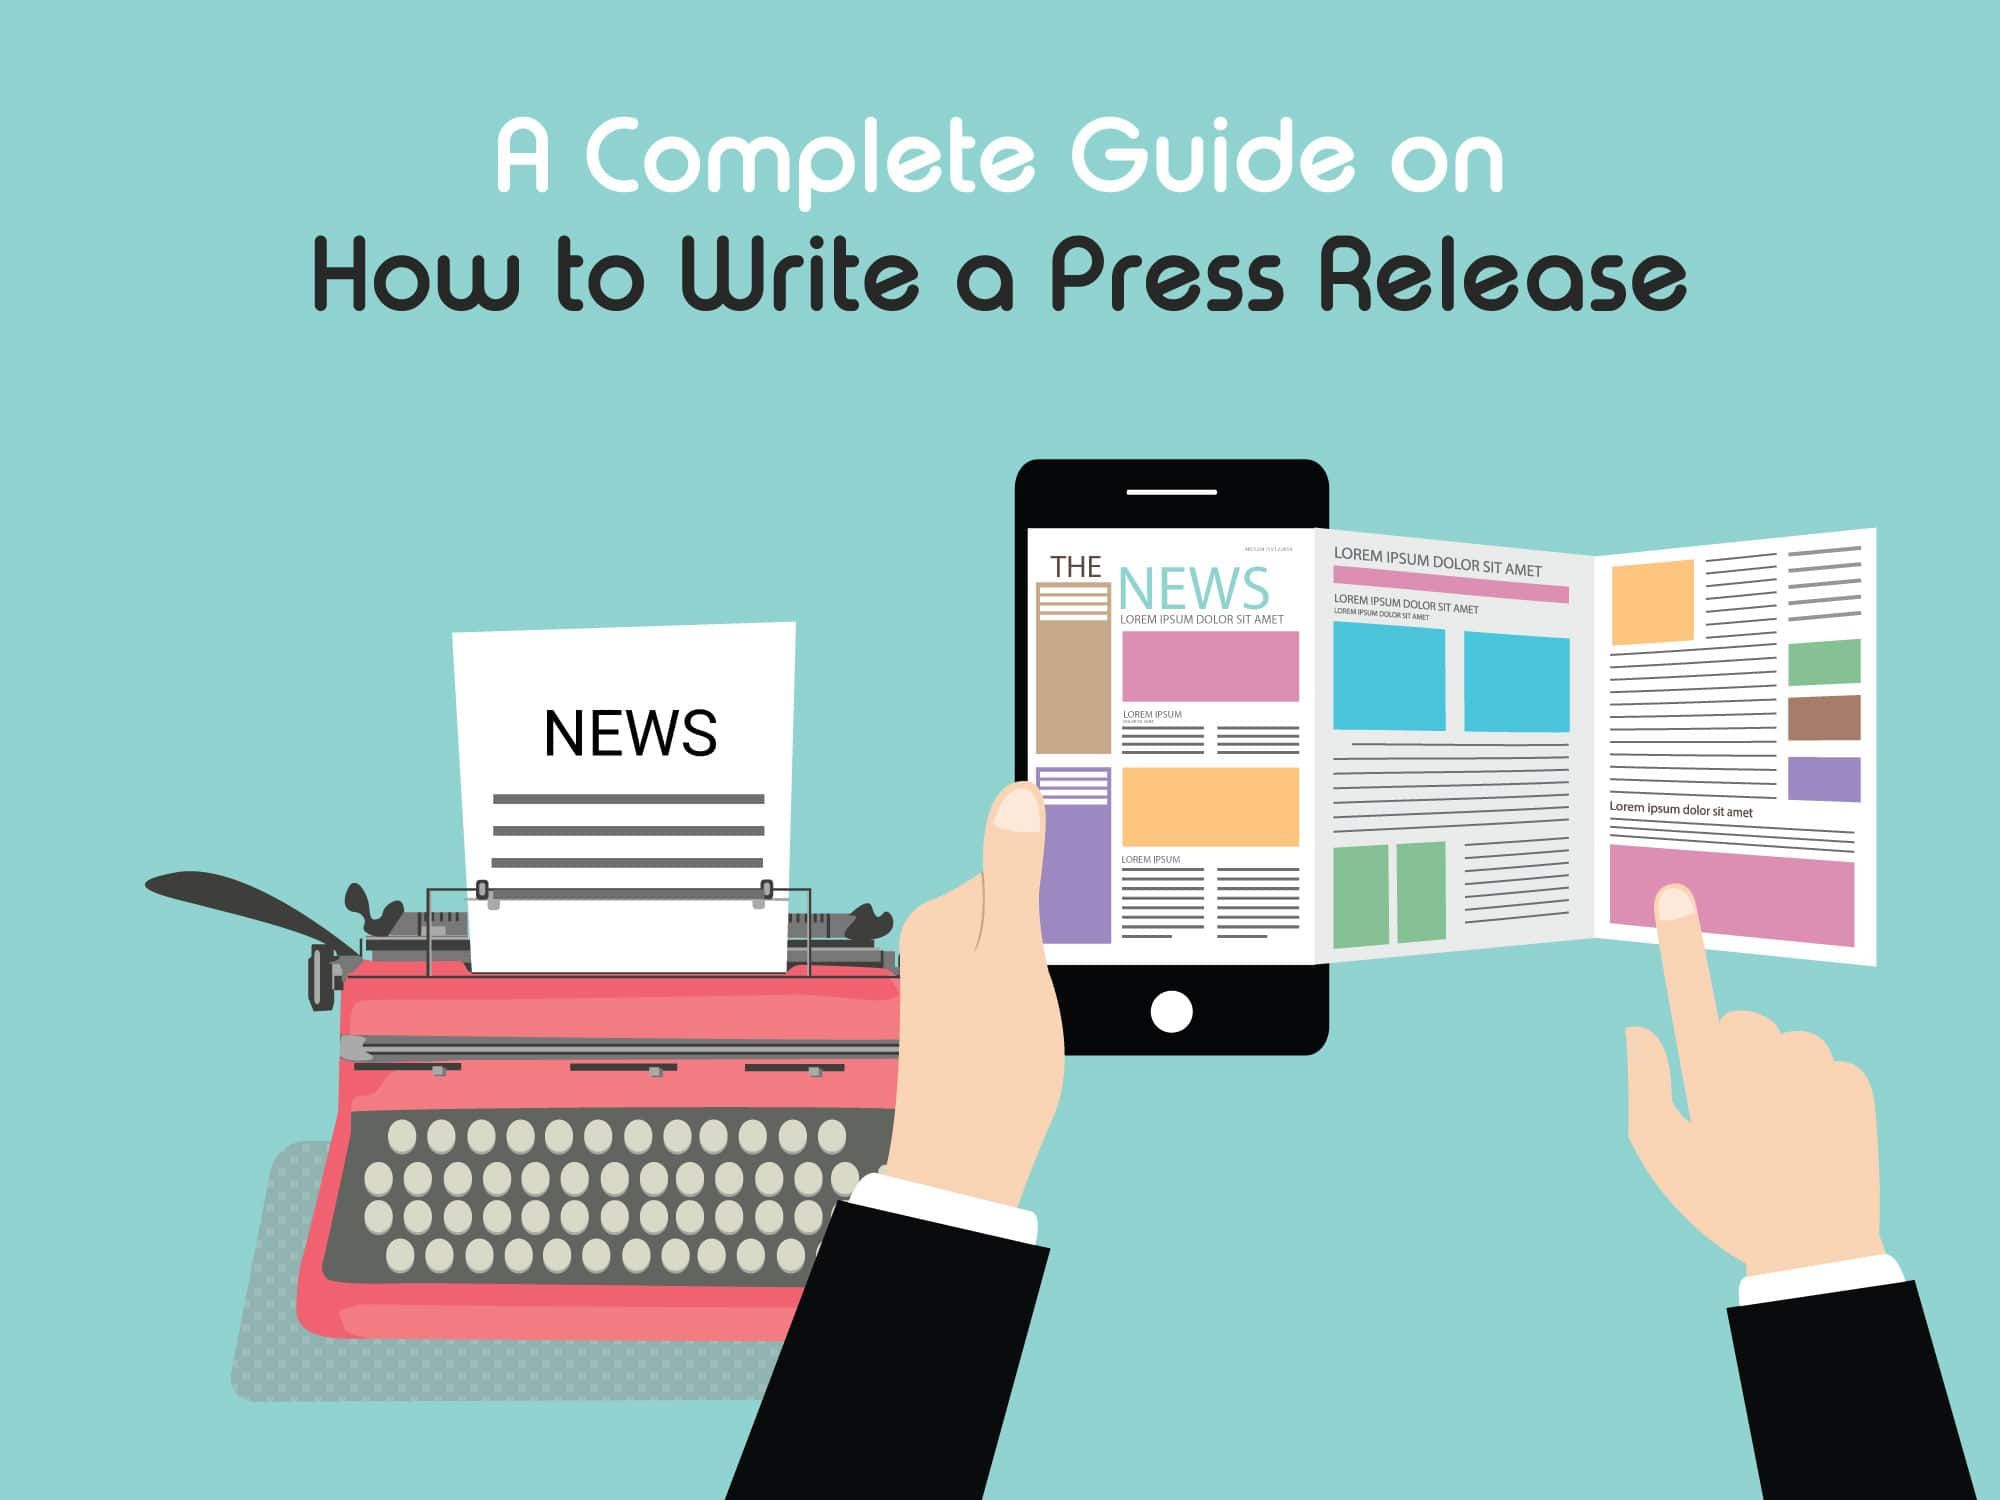 Complete guide on how to write a press release